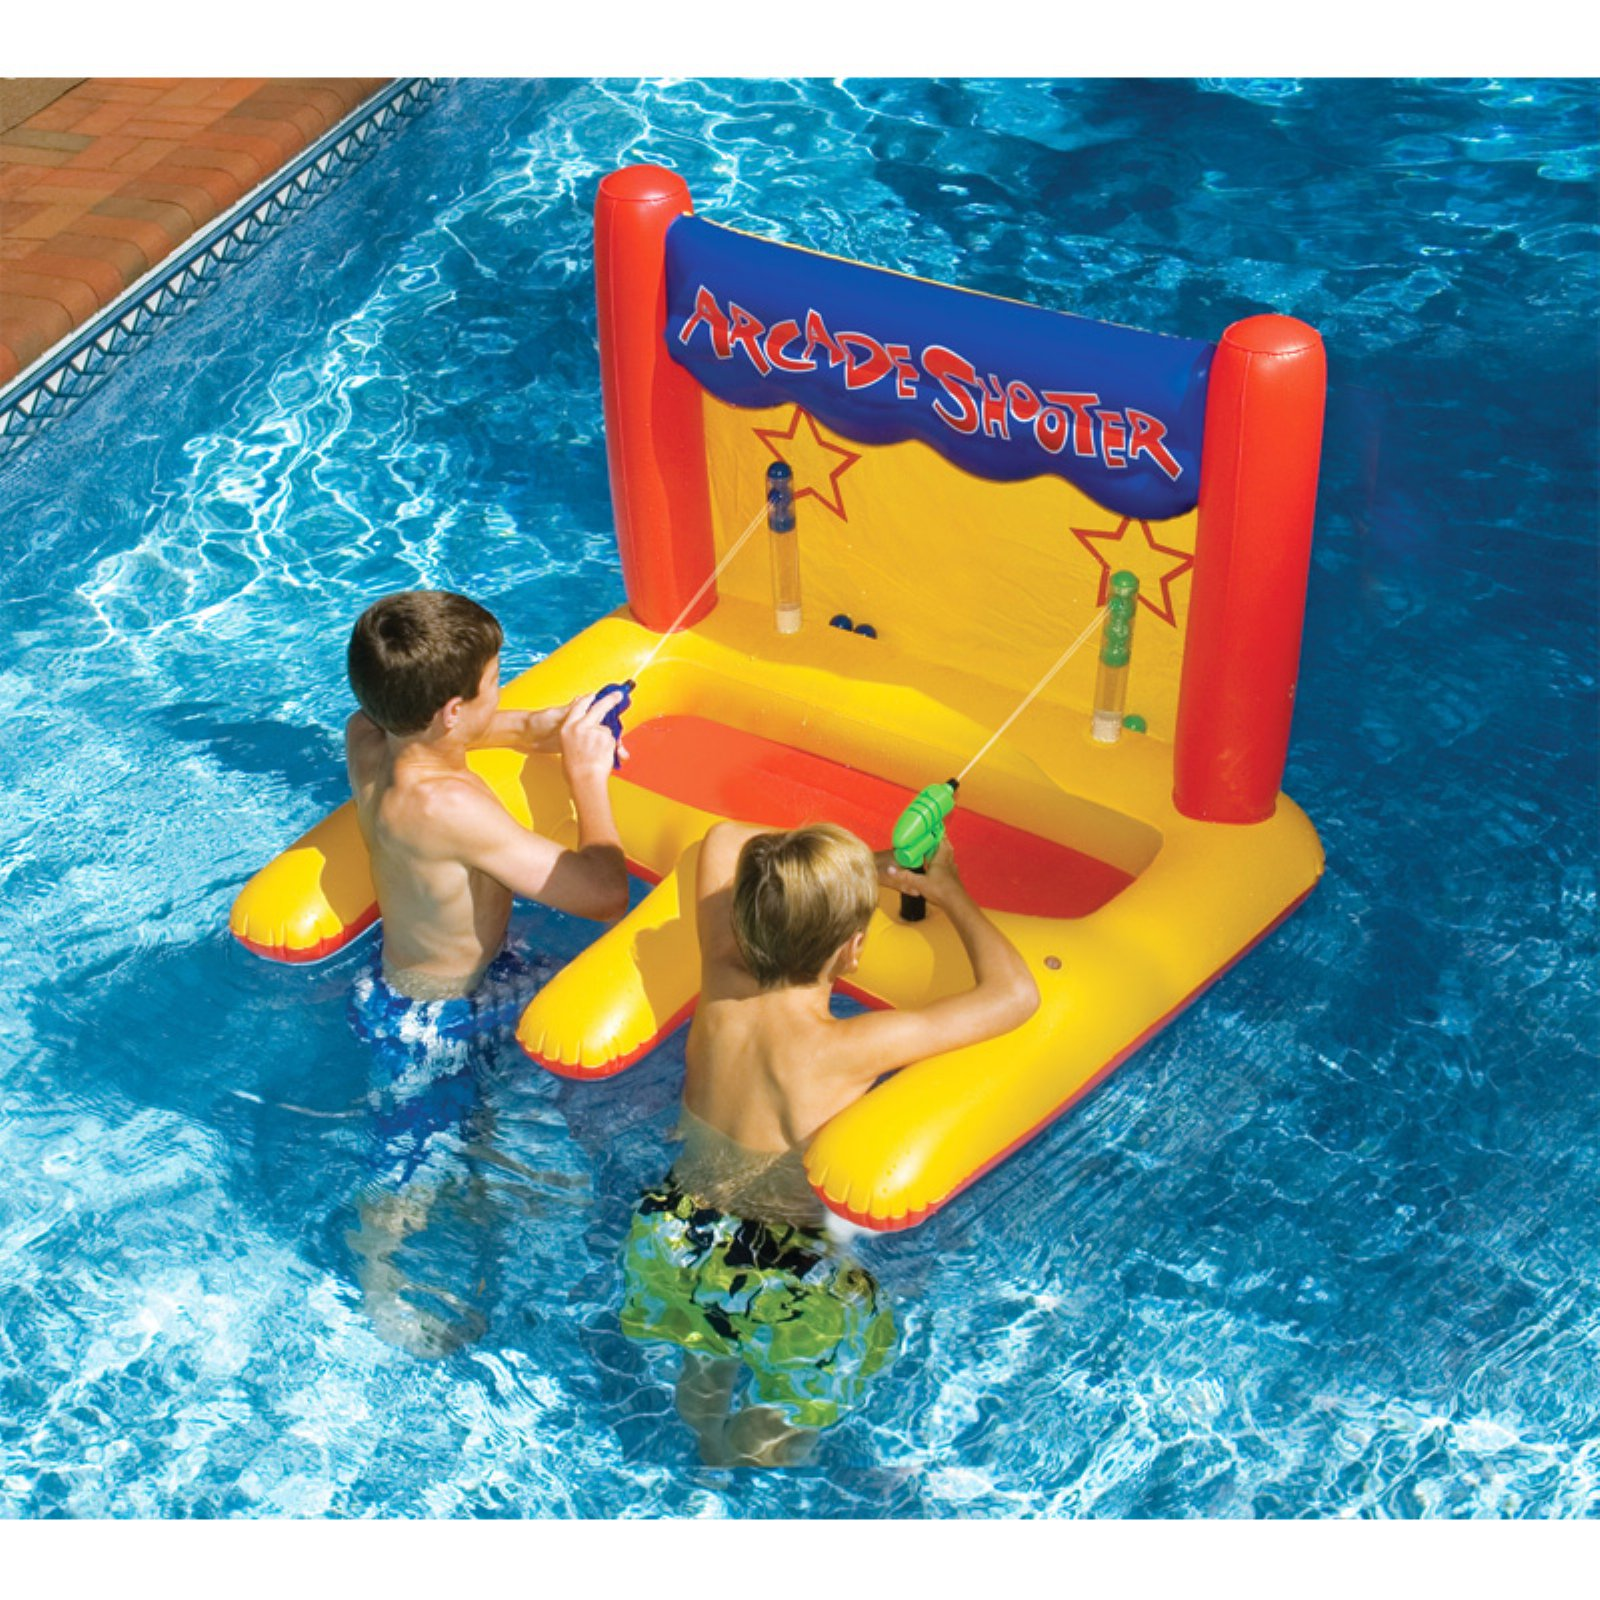 Swimline Arcade Water Shooter Toy for Swimming Pools by Swimline